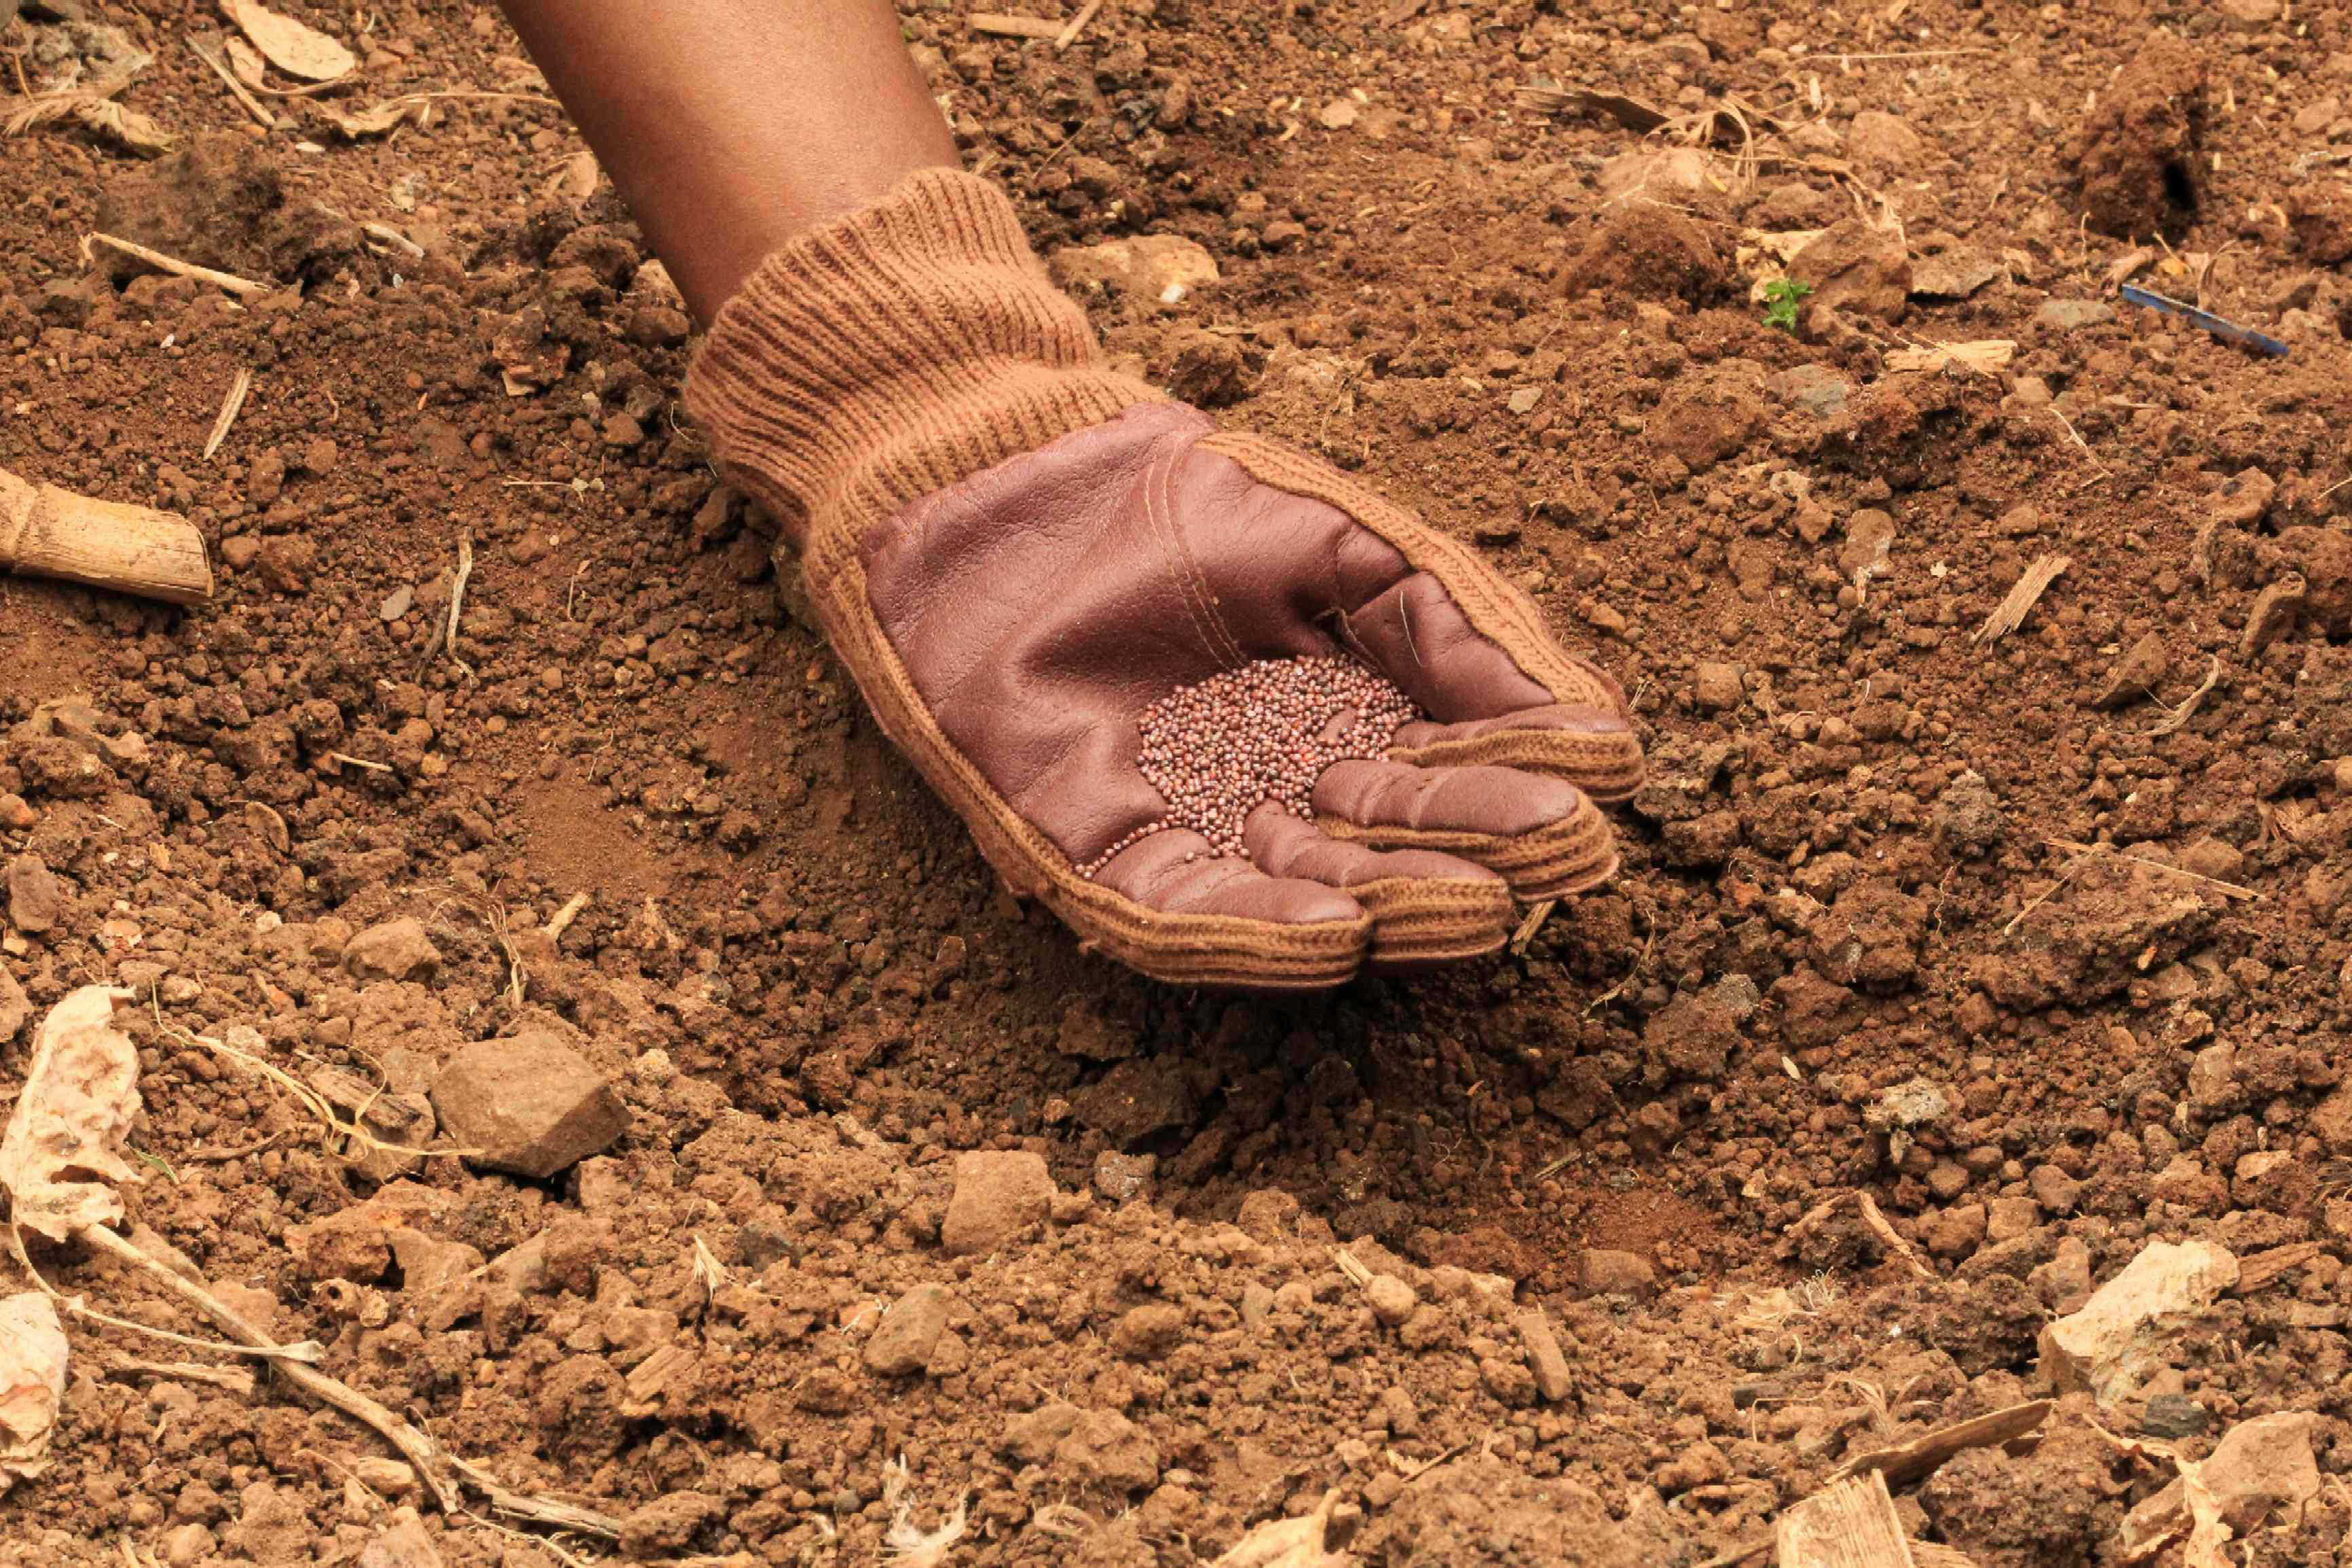 leather-lined gardening glove holds cabbage seeds in palm before planting in soil